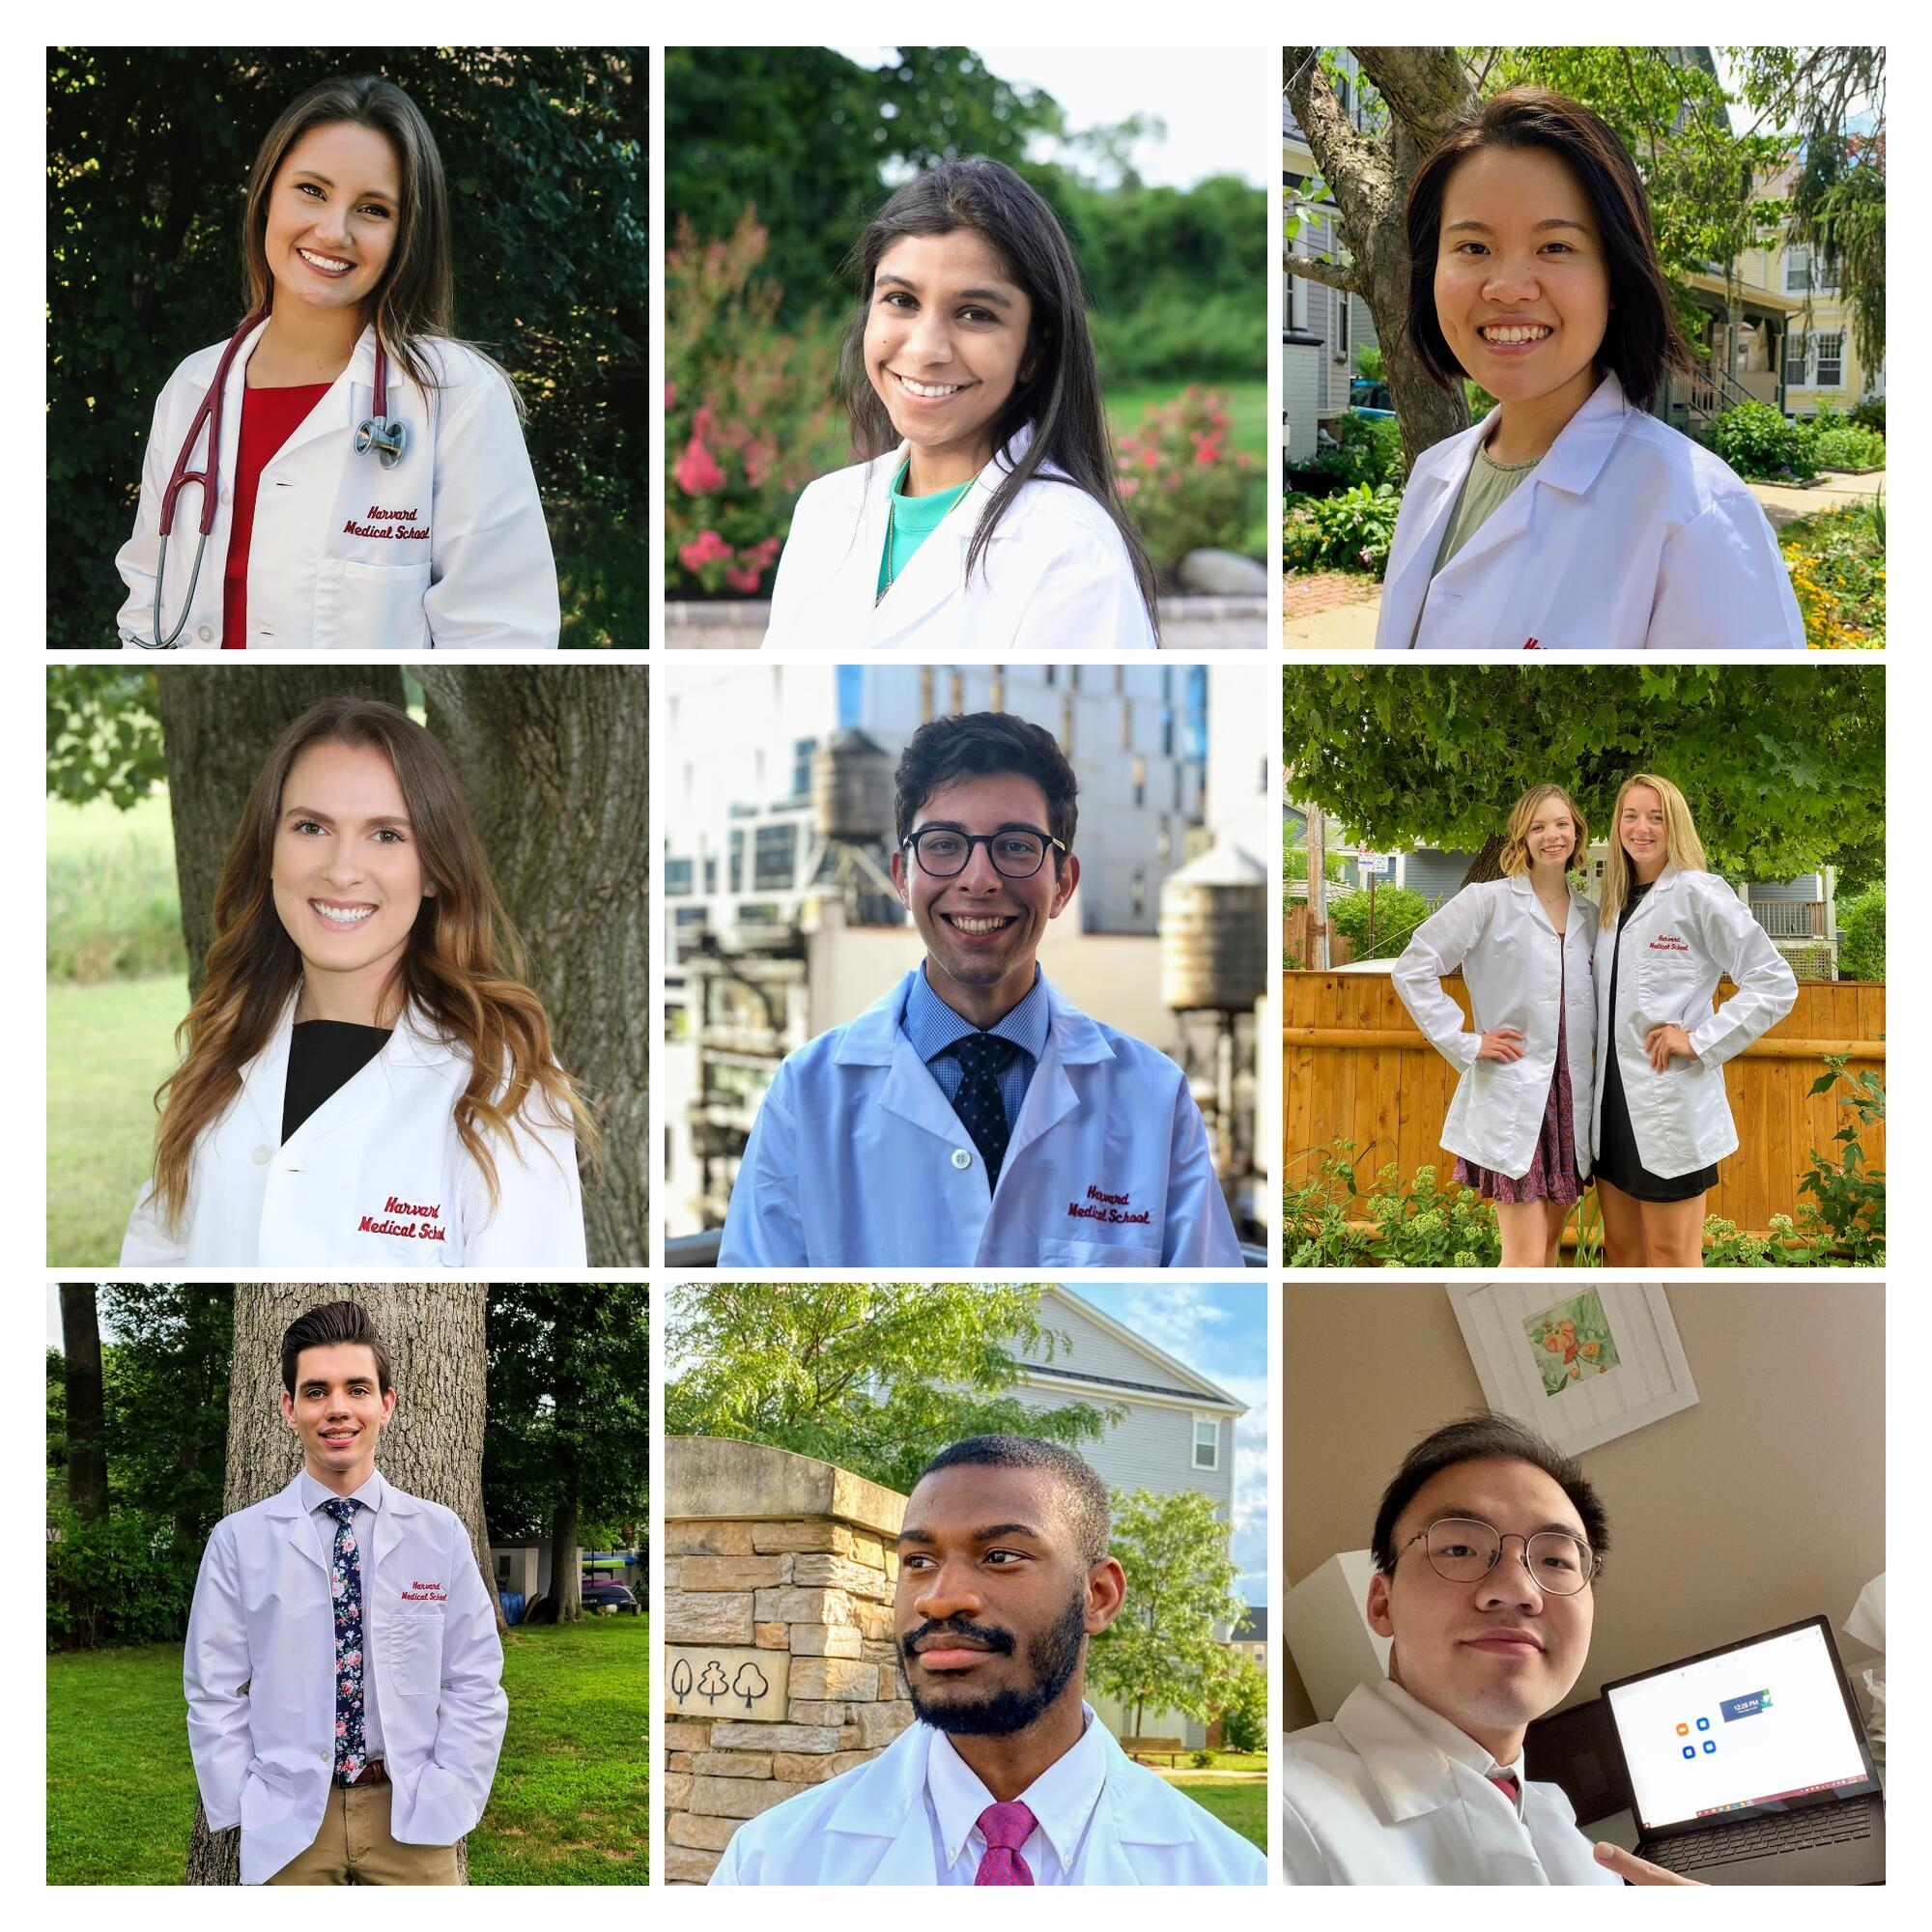 collage of students in white medical coats